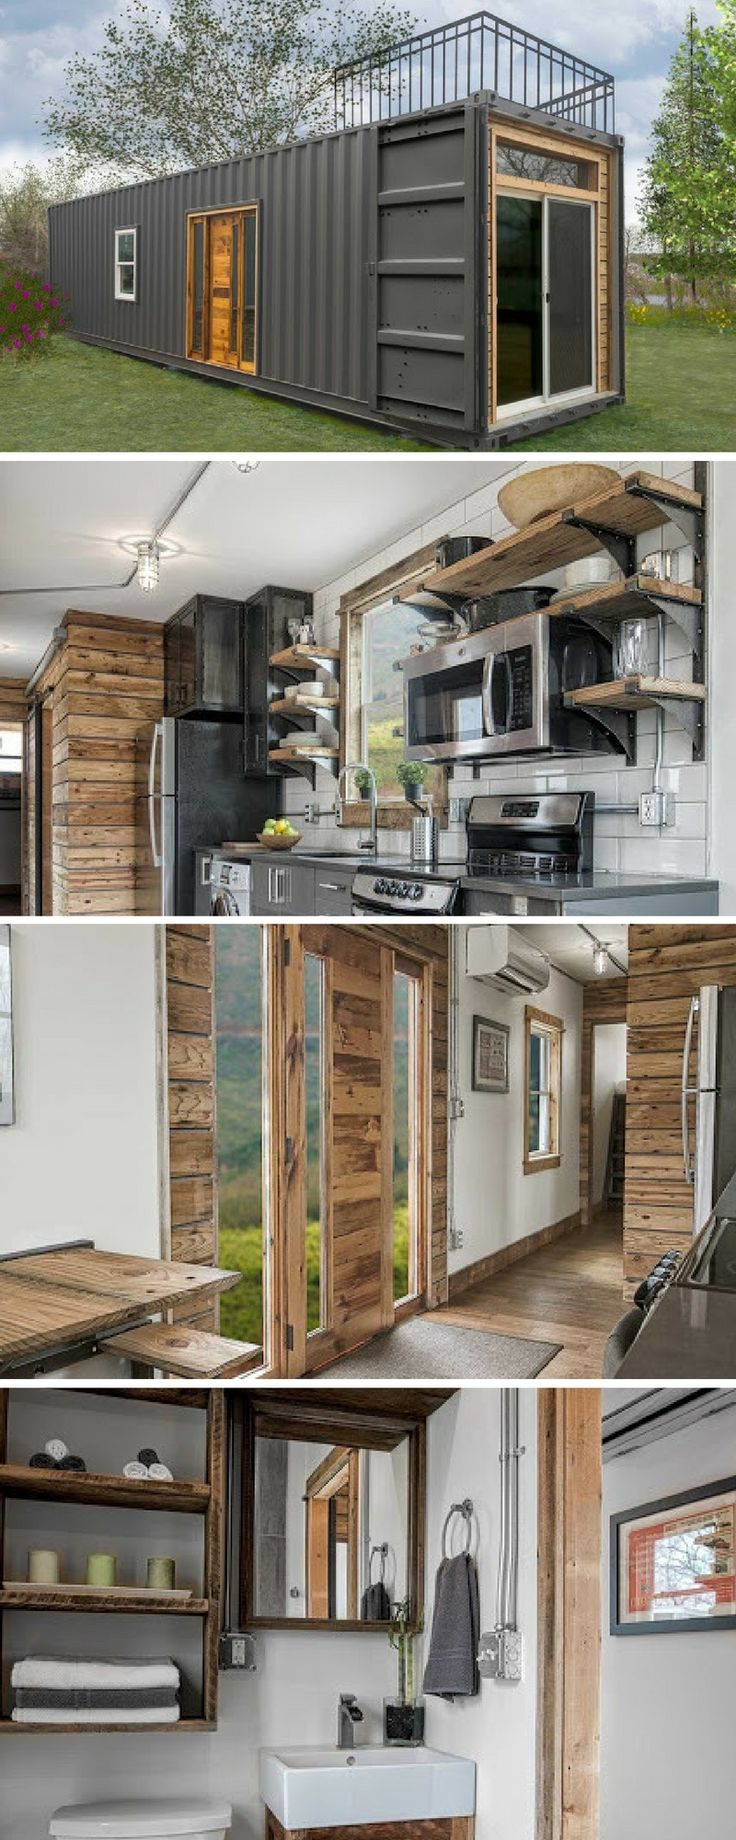 Best Kitchen Gallery: 2184 Best Tiny House Love Images On Pinterest Tiny Homes Little of 32 X 40 Shipping Container Homes on rachelxblog.com